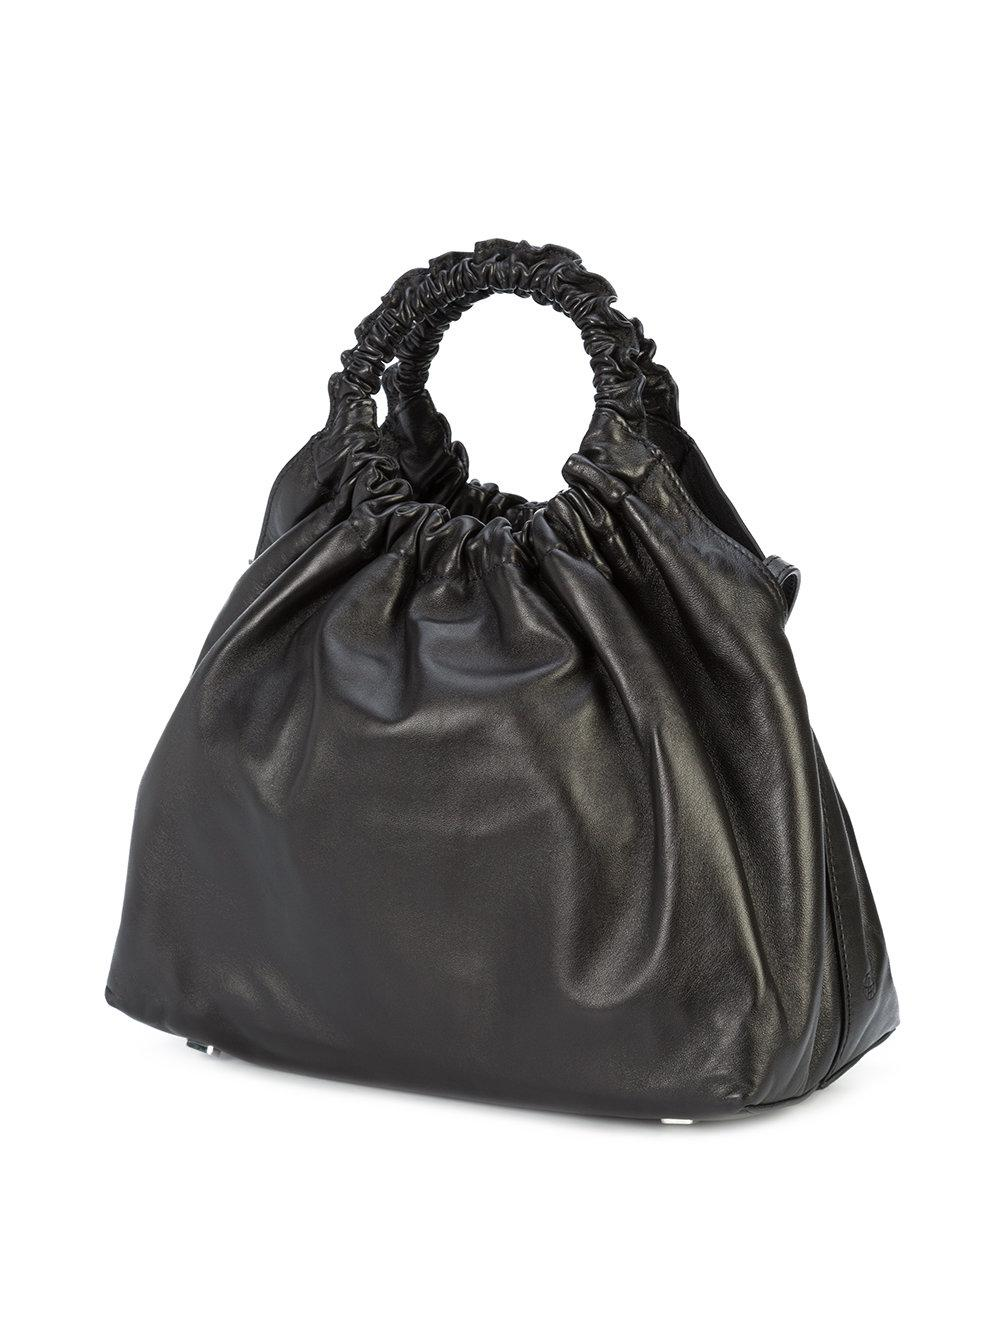 The Row Leather Double Circle Tote Bag in Black